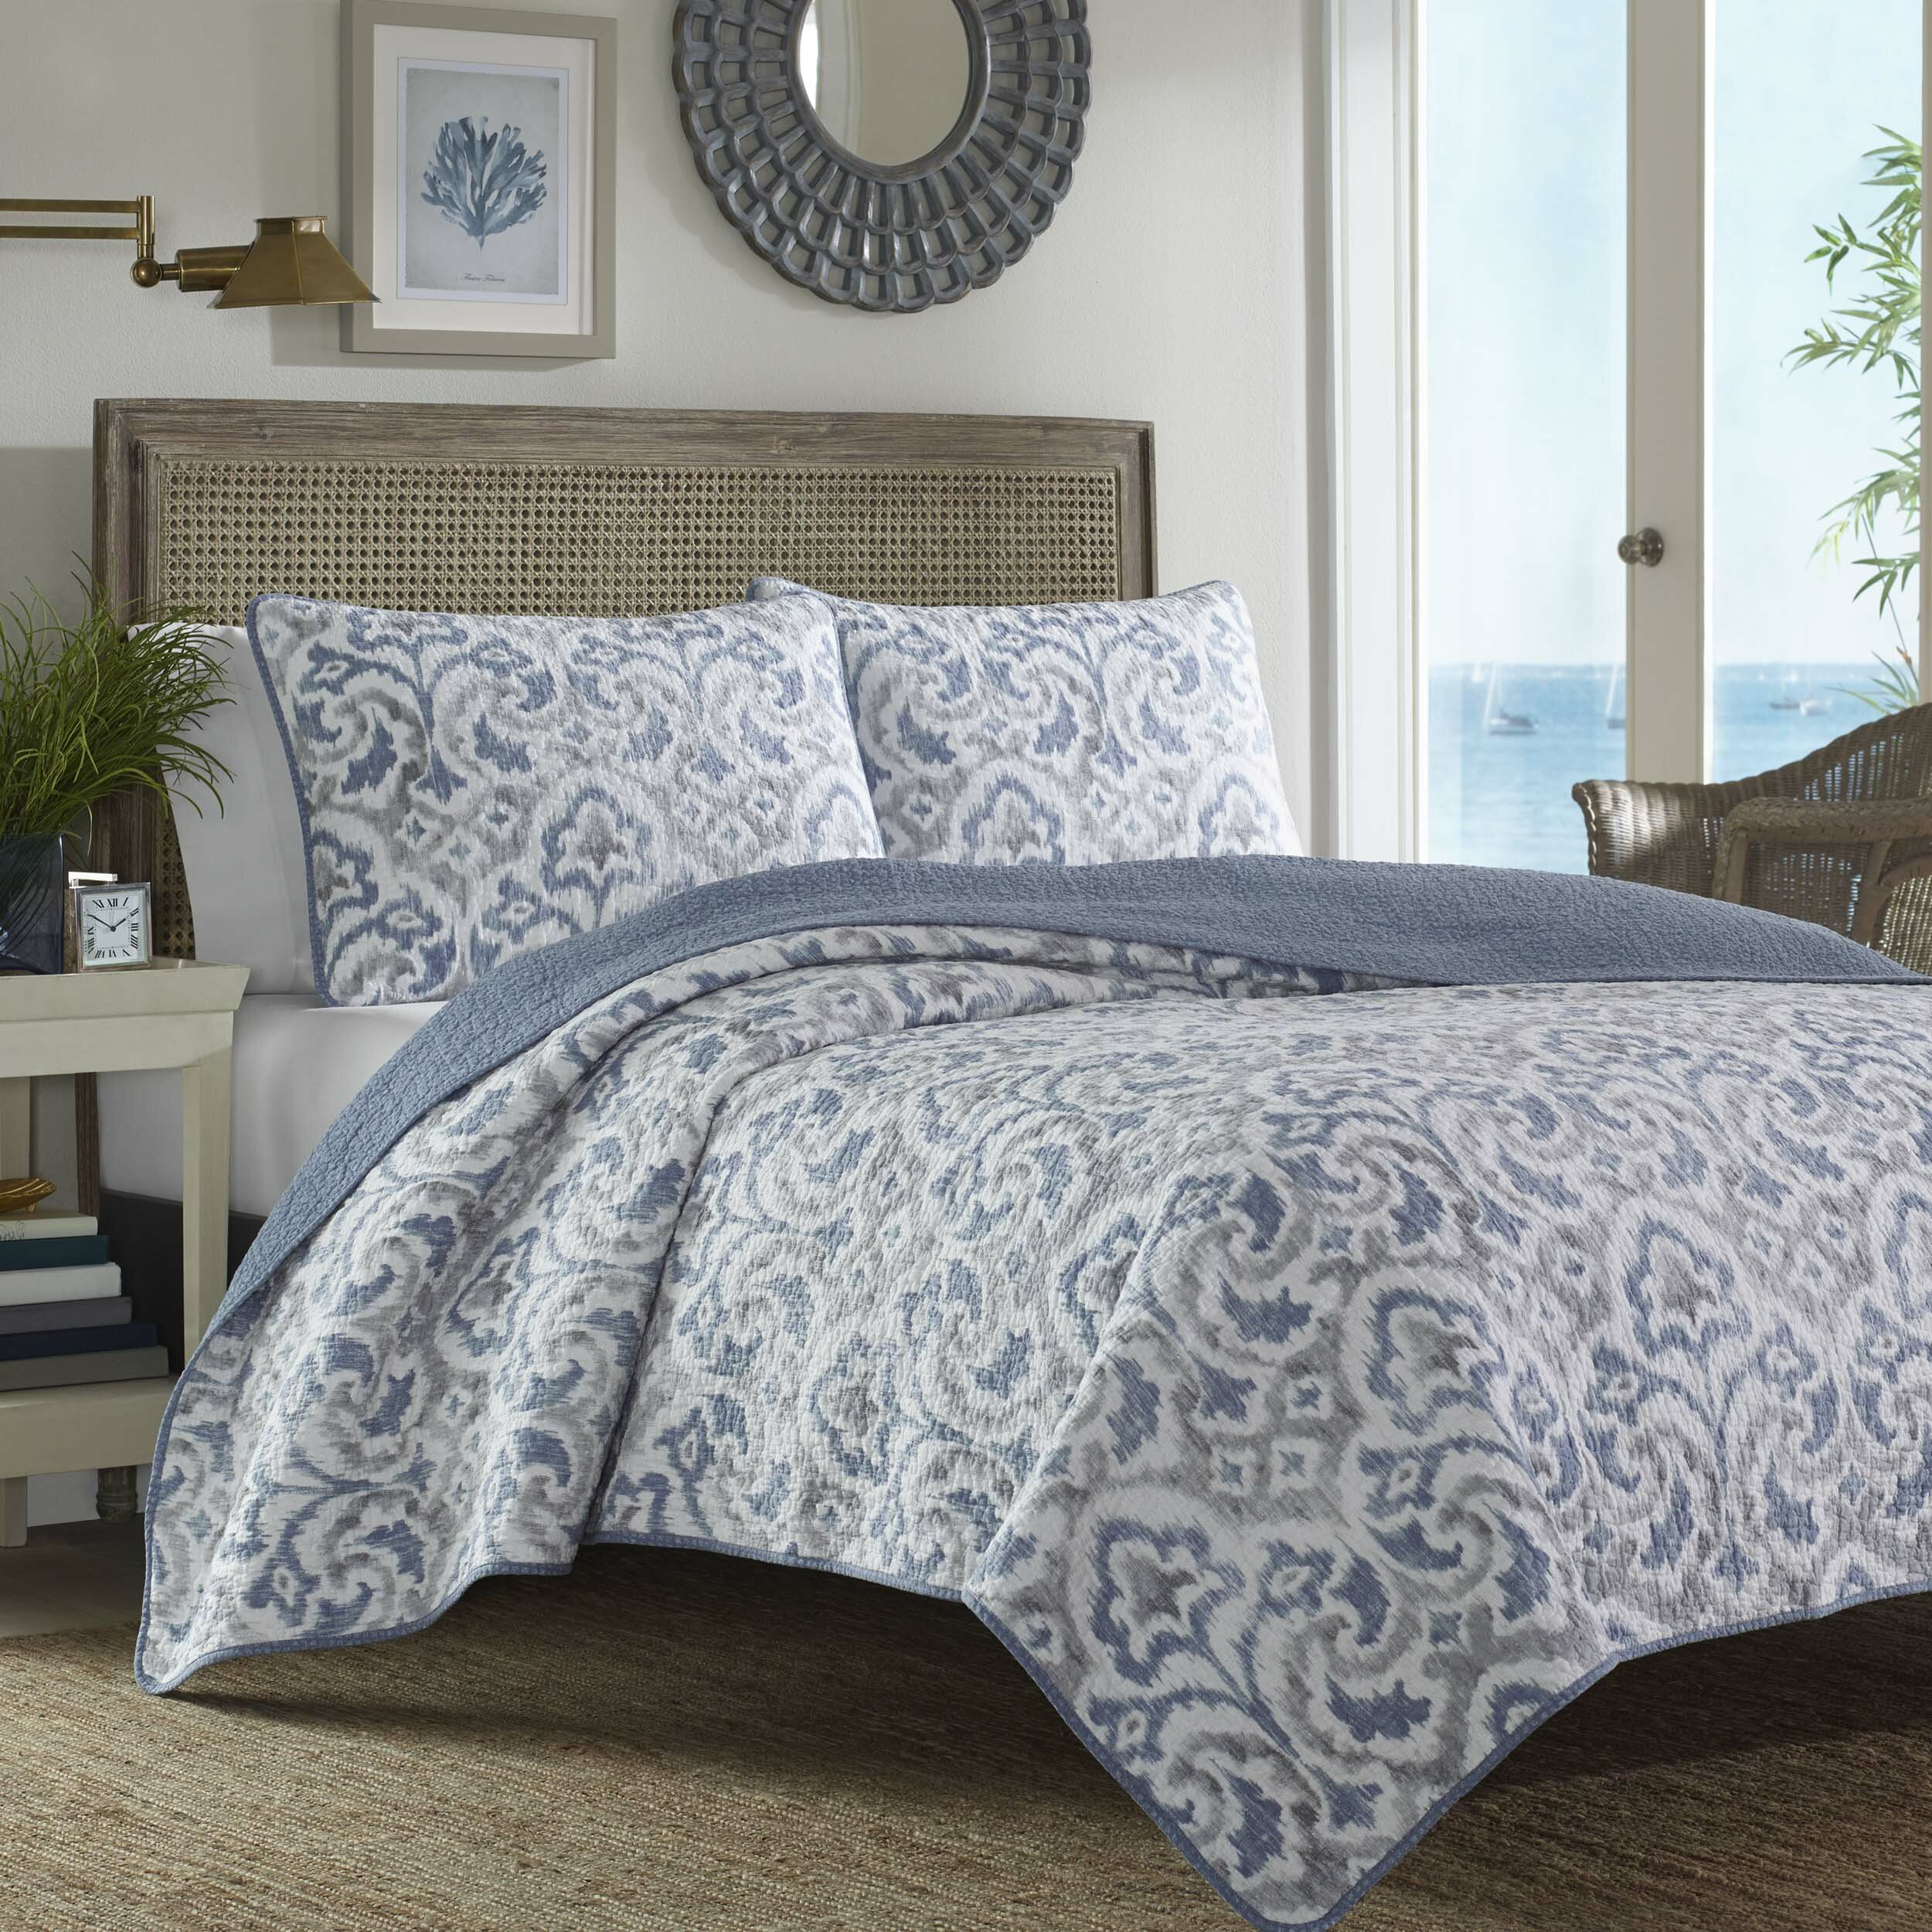 cotton shipping overstock tommy quilt product today bedding bath cove bahama sale on free bonny comforter set king